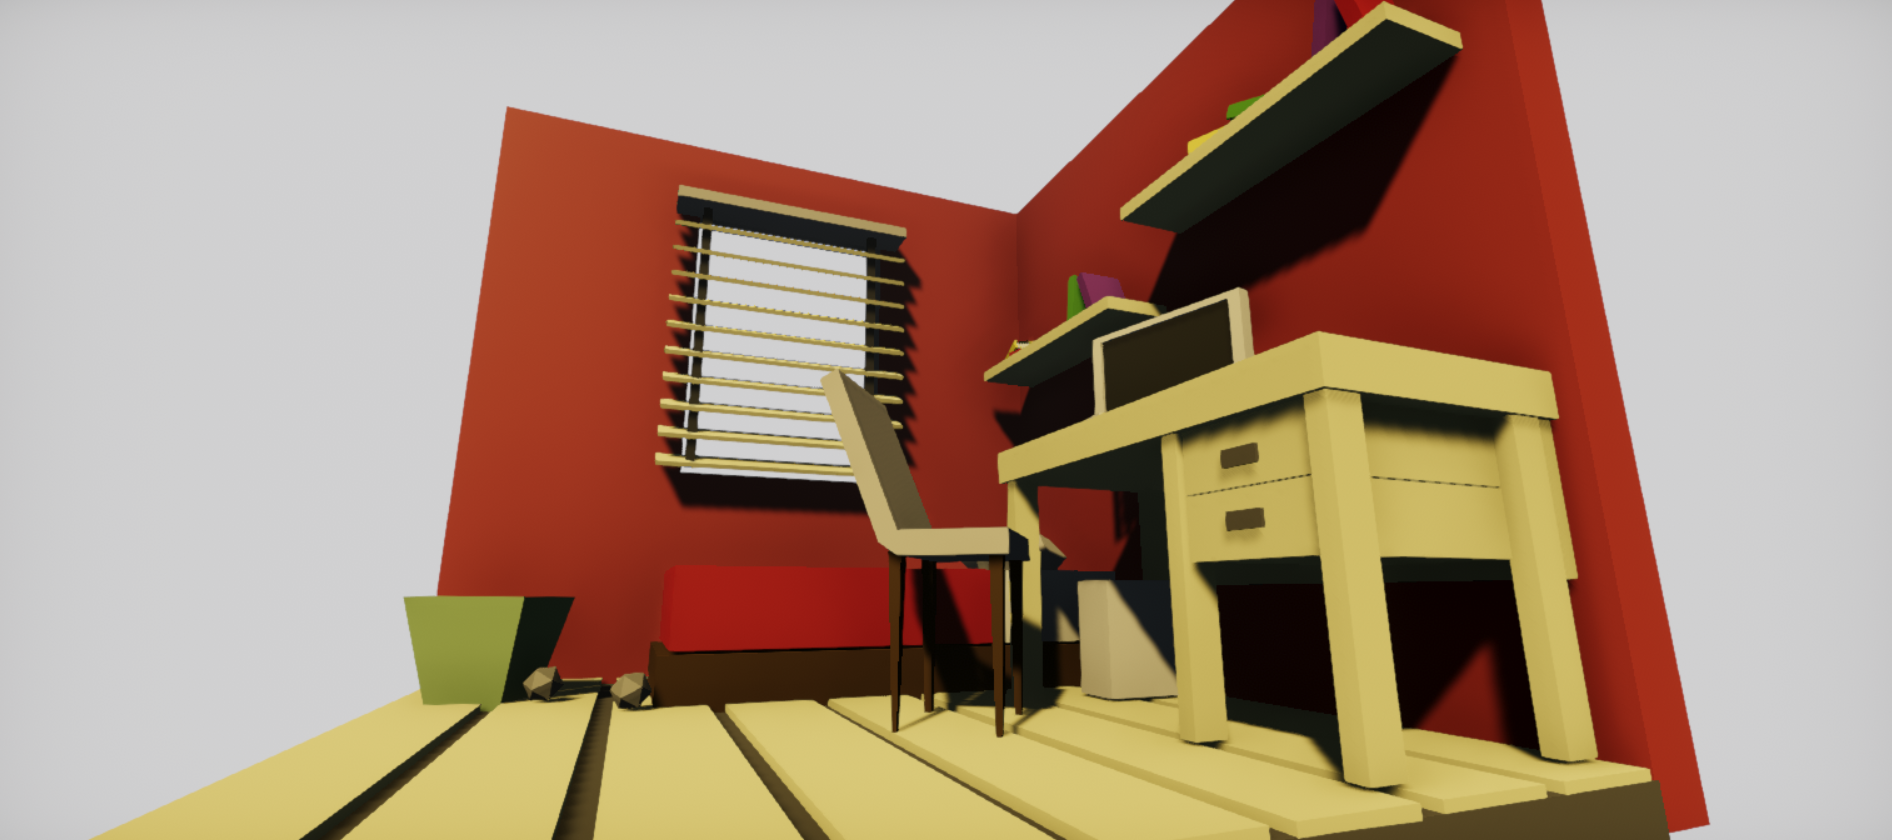 Low Poly Bed Room Interiors